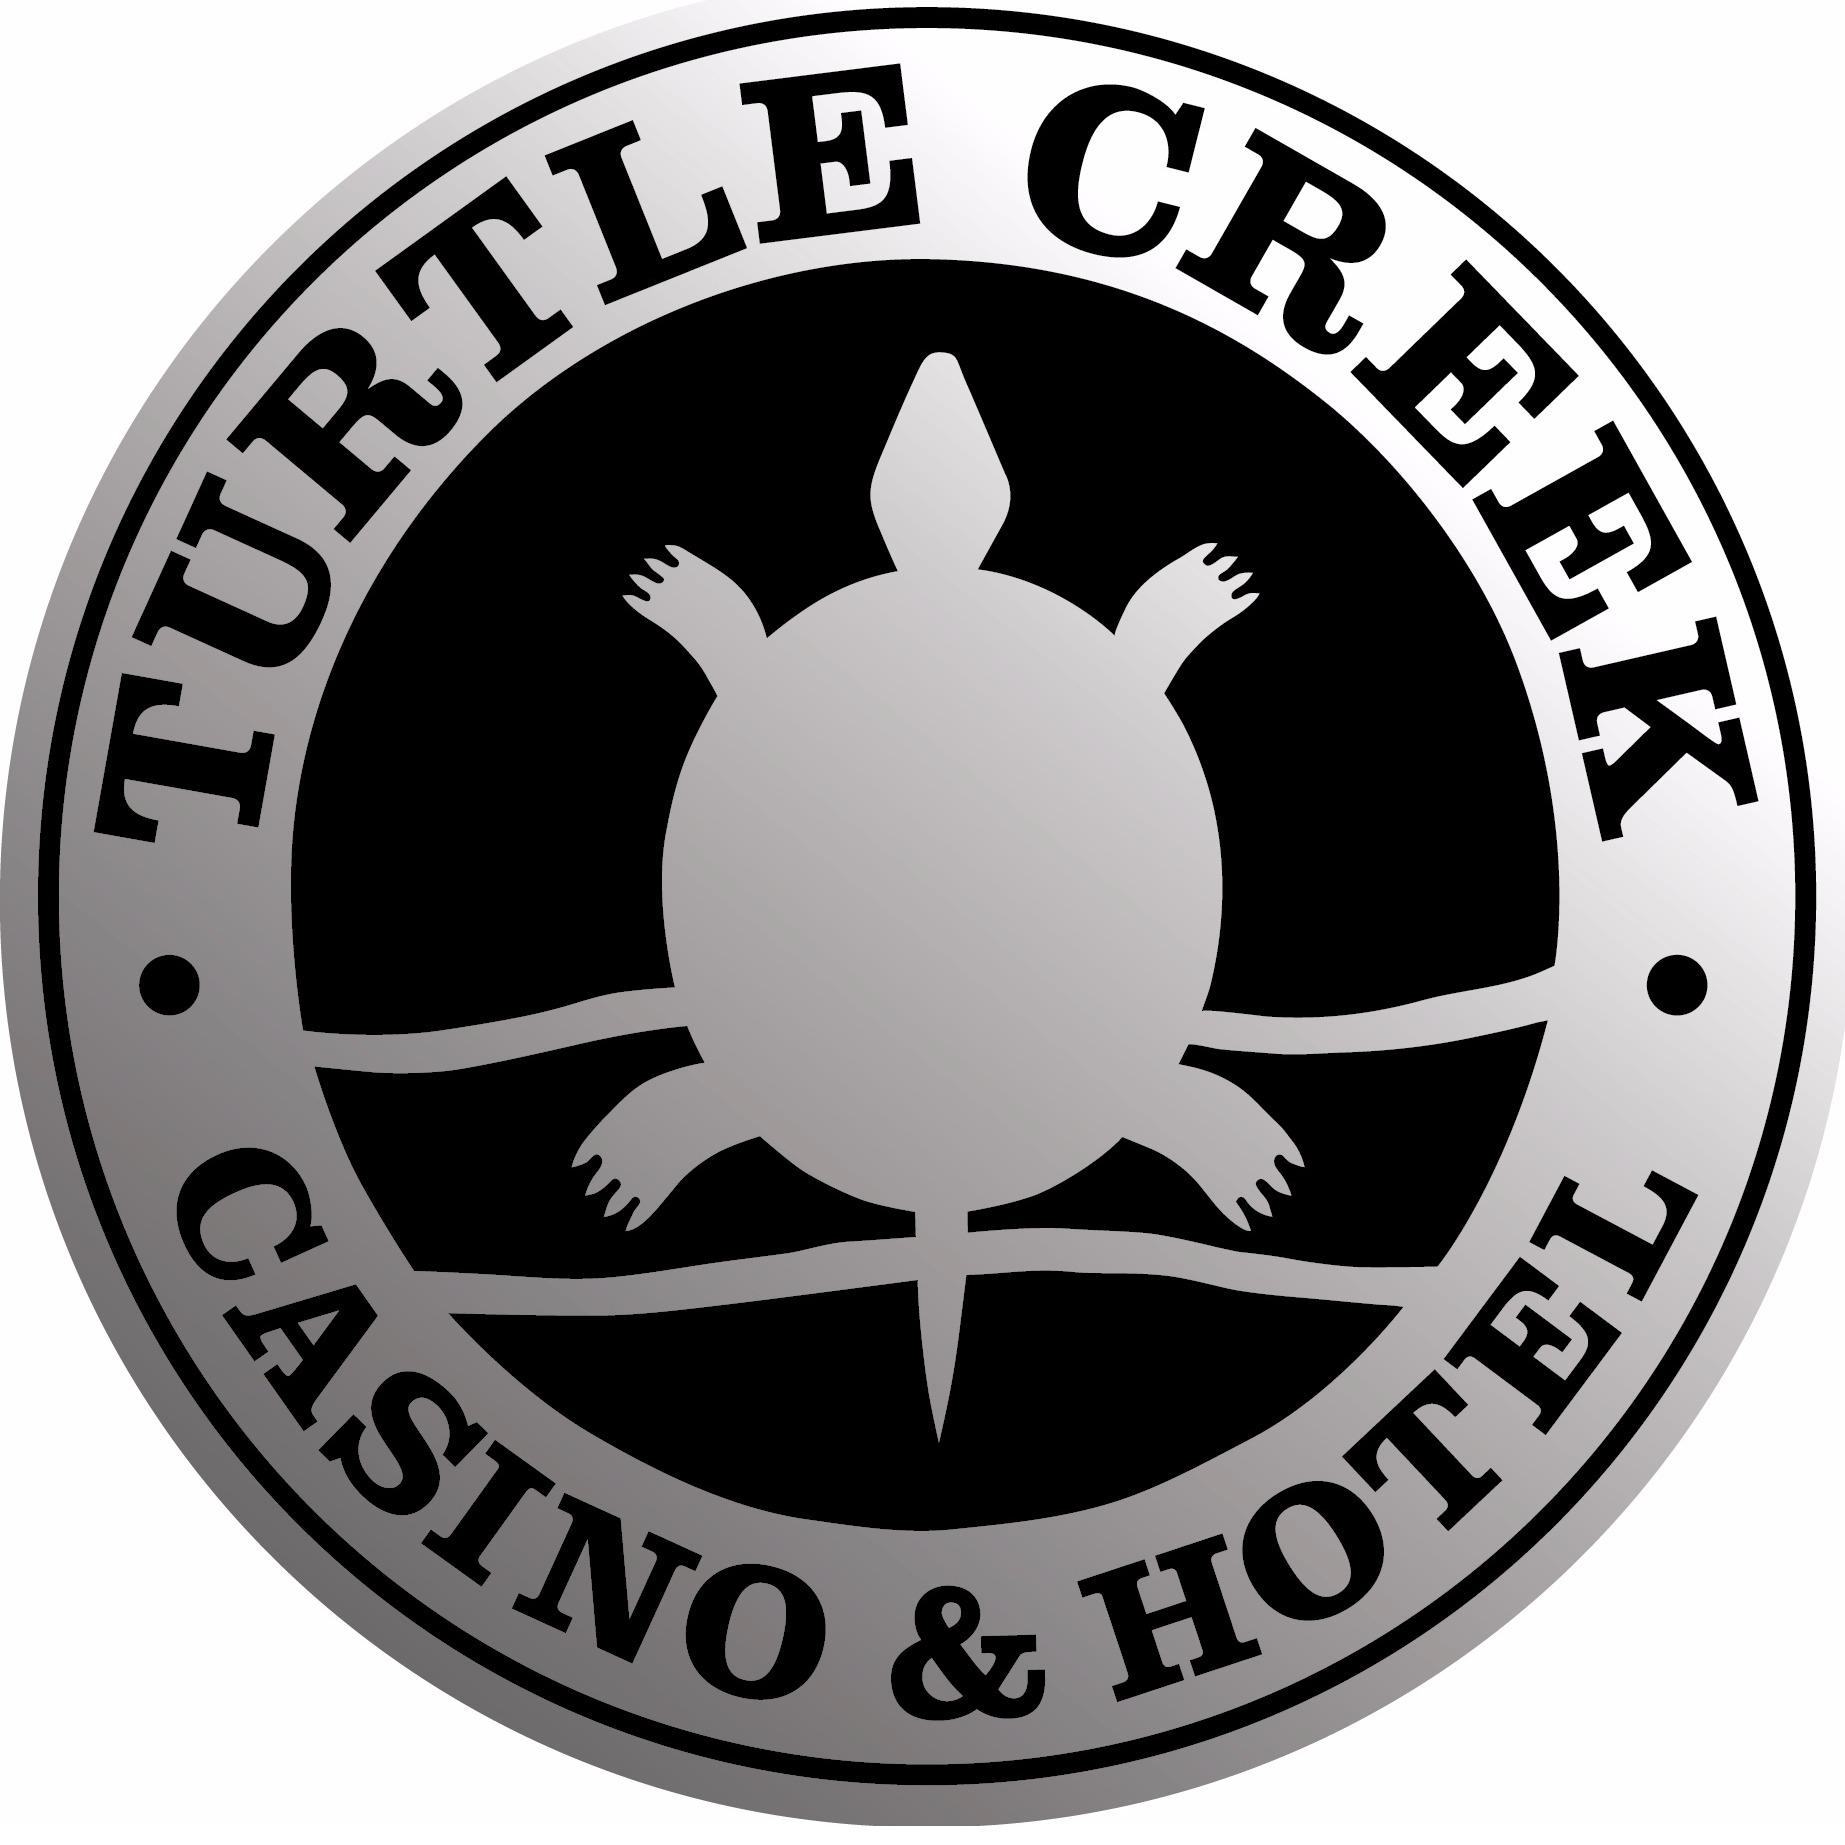 Turtle creek blackjack